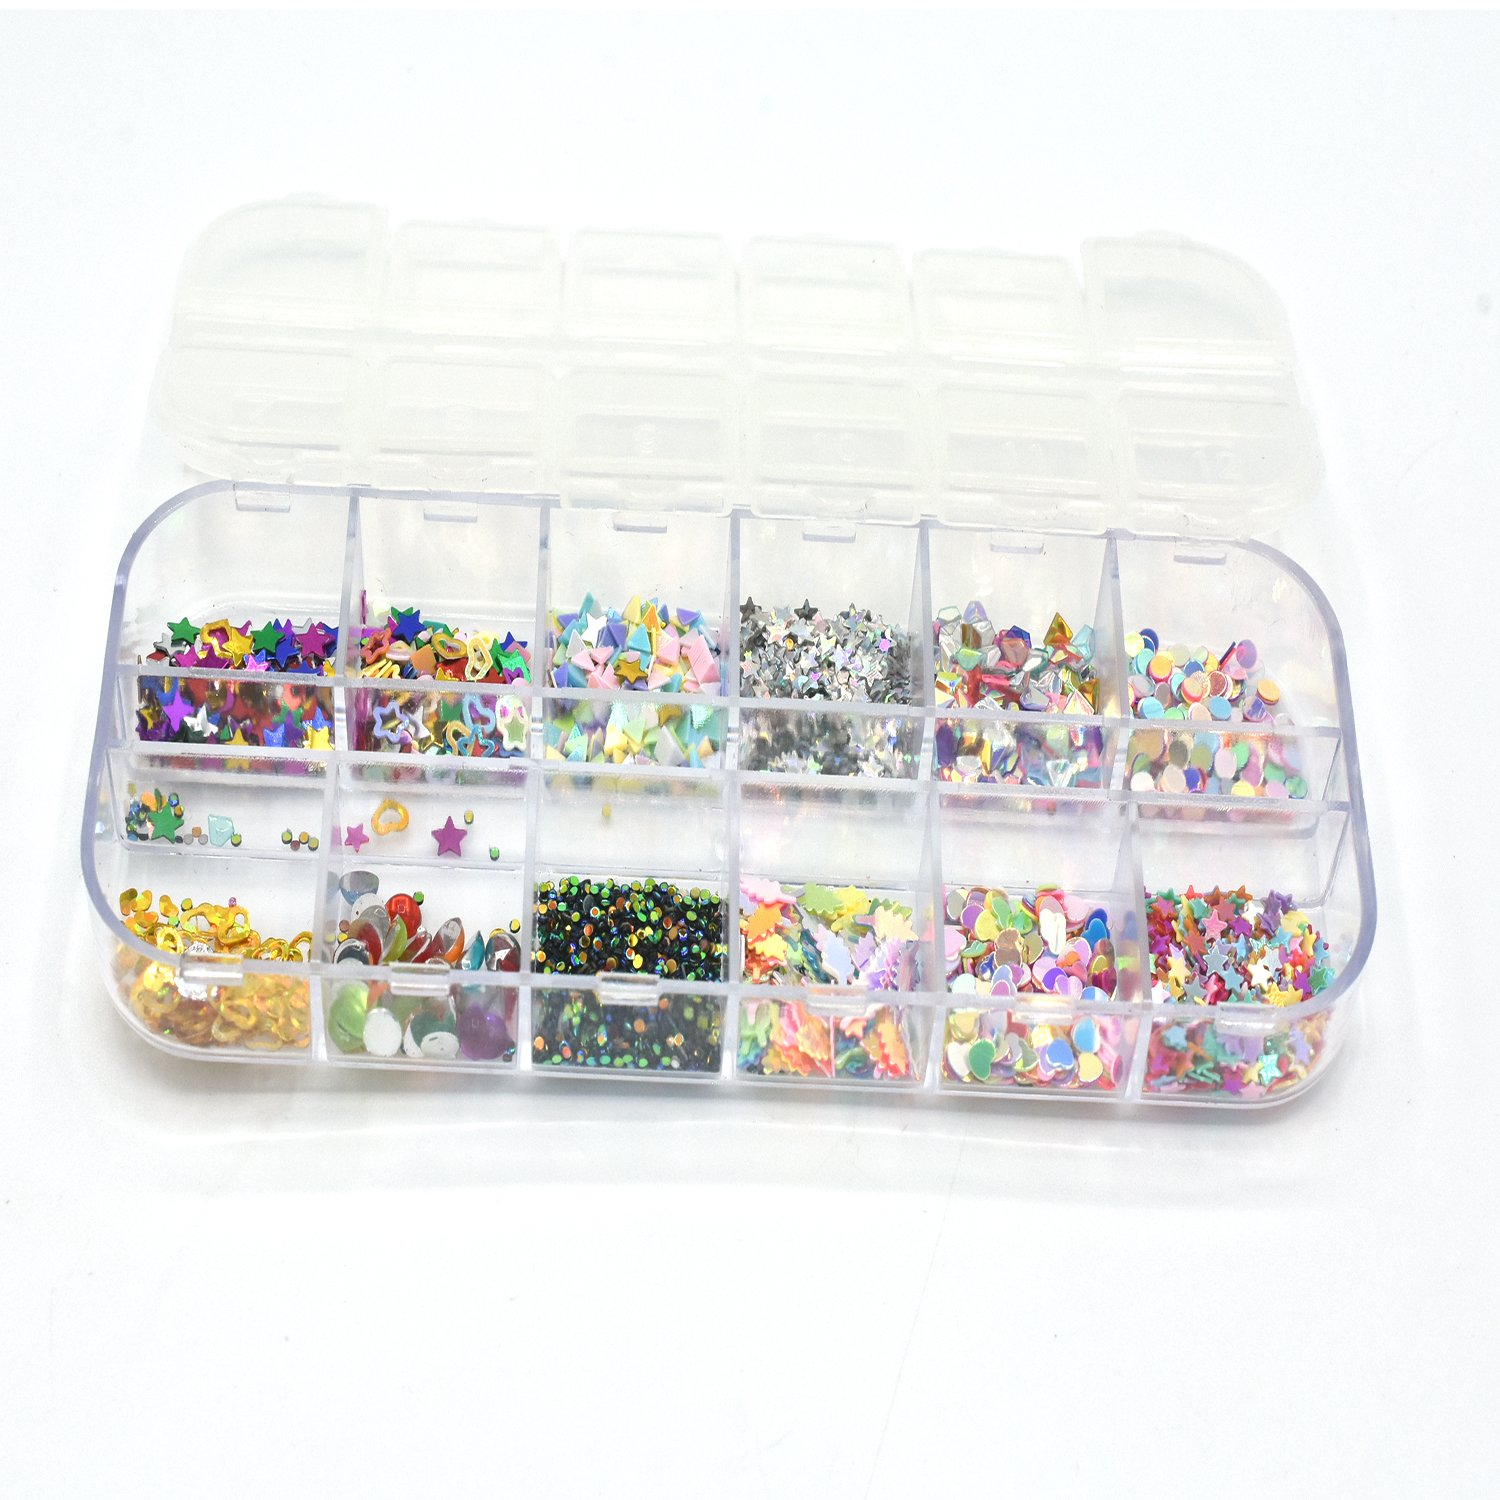 Nail Art Decorations Colorful Nail Rhinestones Beads Pearls DIY Manicure Nail Ornaments Jewelry